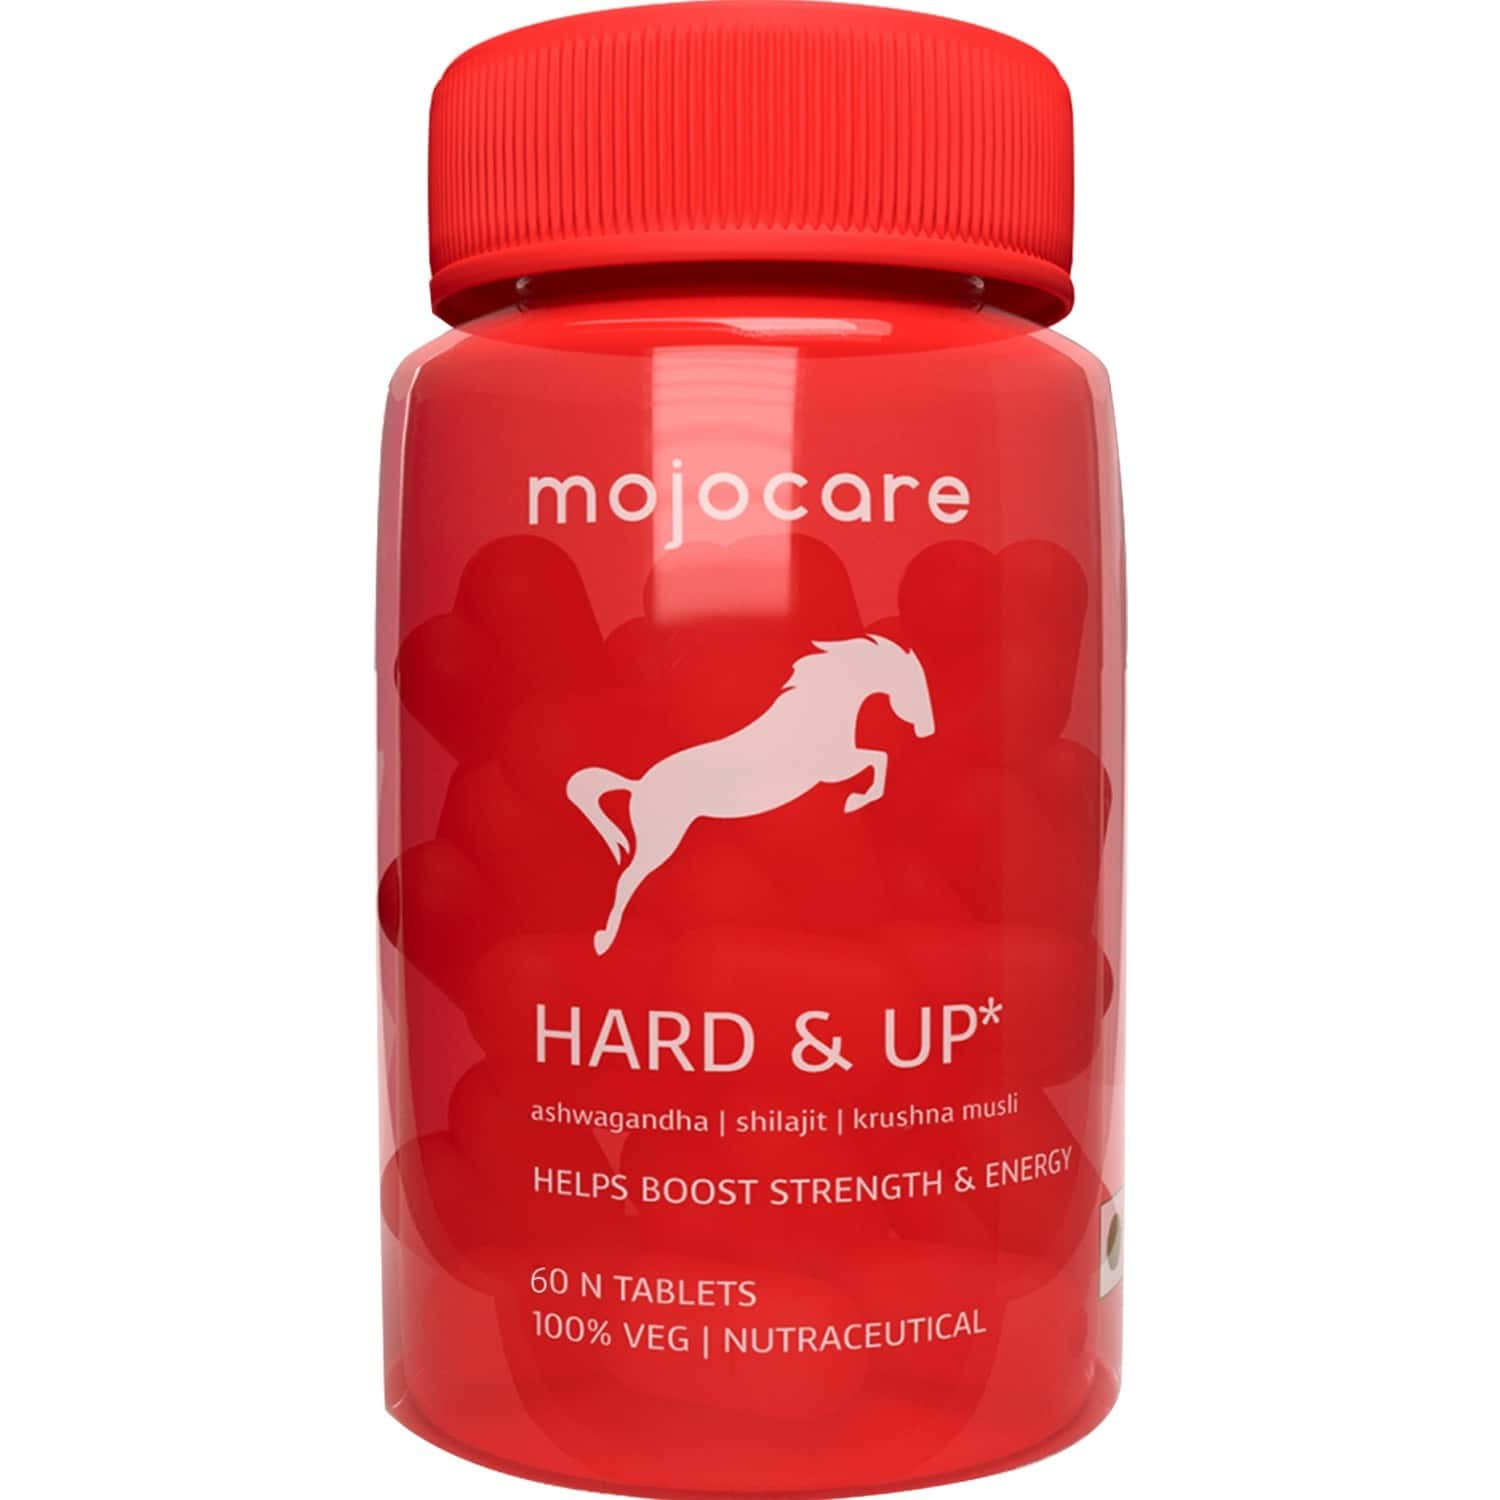 Mojocare Hard And Up For Strength And Endurance Pack Of 1x 60 Tablets